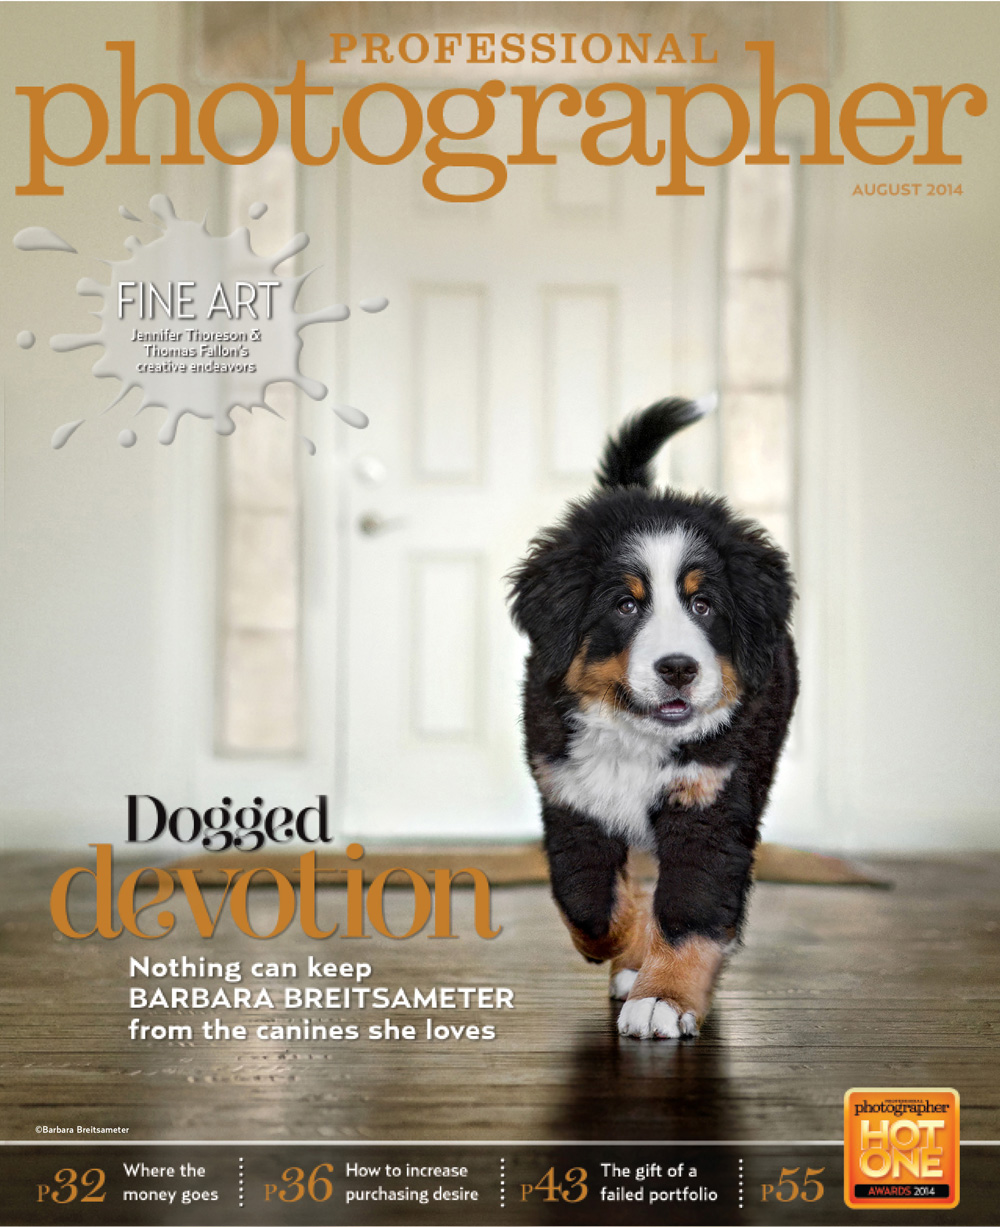 Professional-Photographer-Magazine.jpg